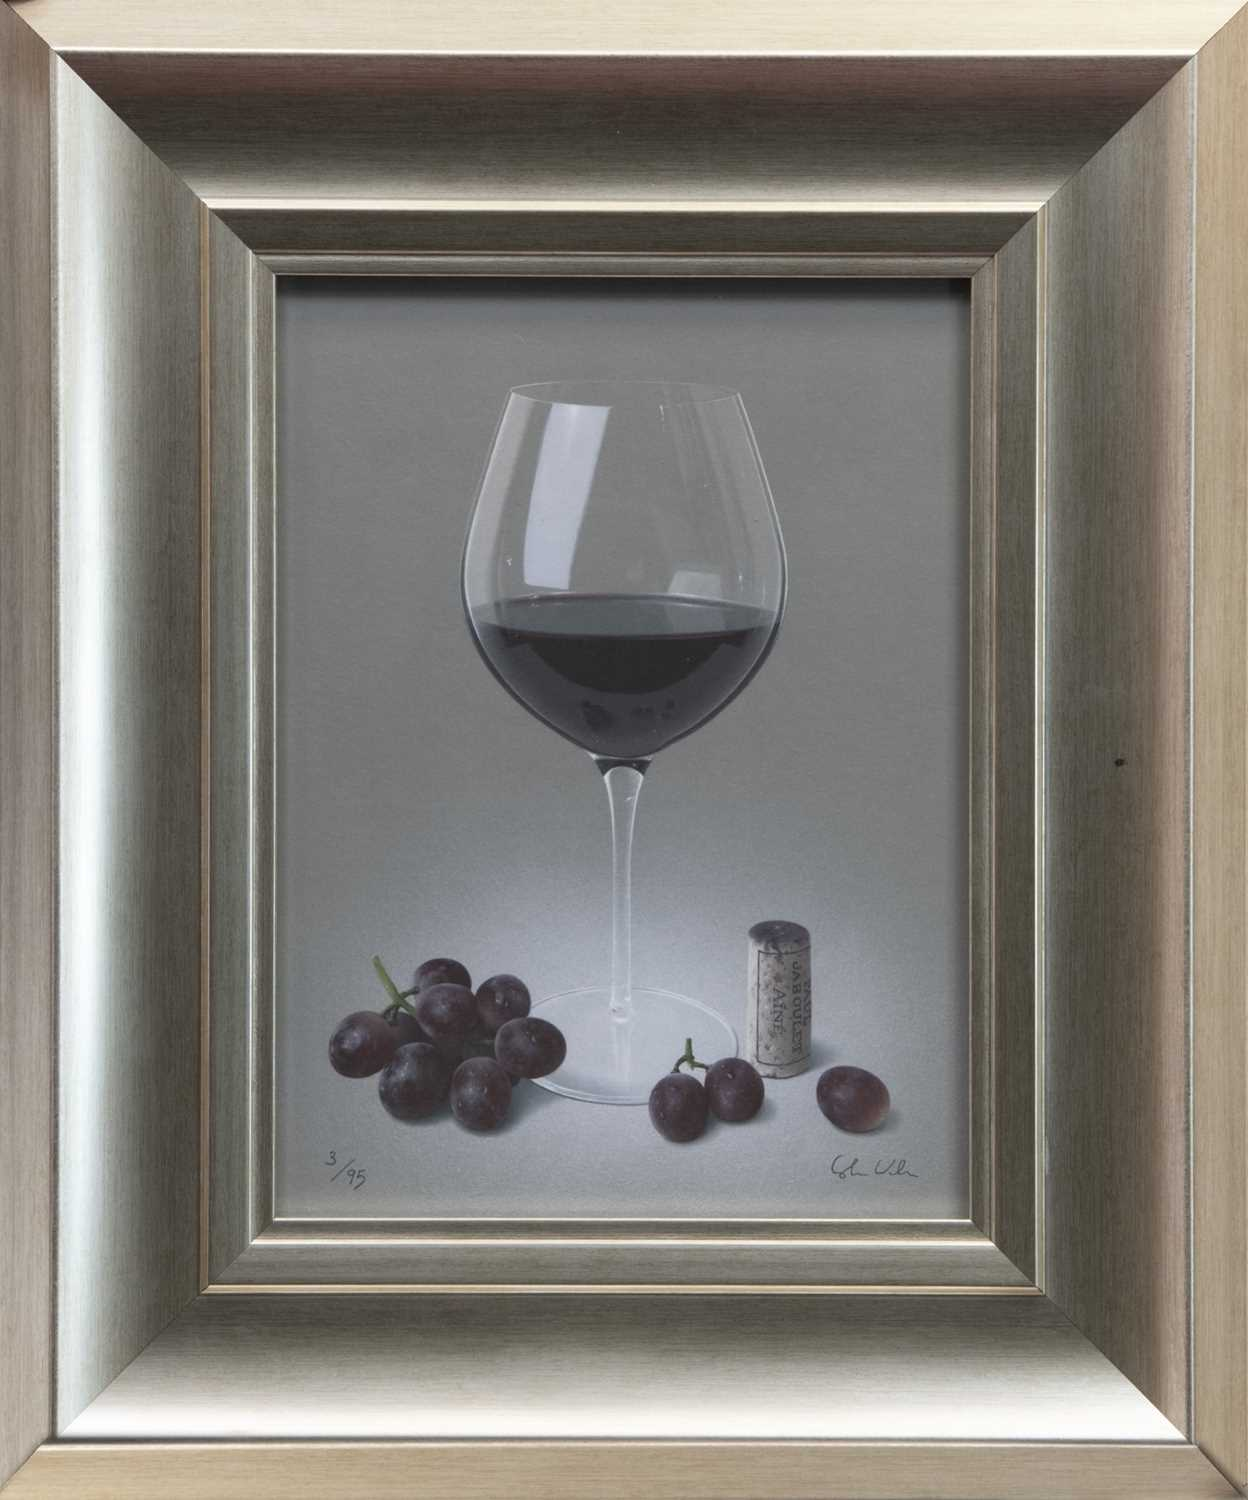 Lot 142 - RED WINE & GRAPES, A GICLEE PRINT BY COLIN WILSON